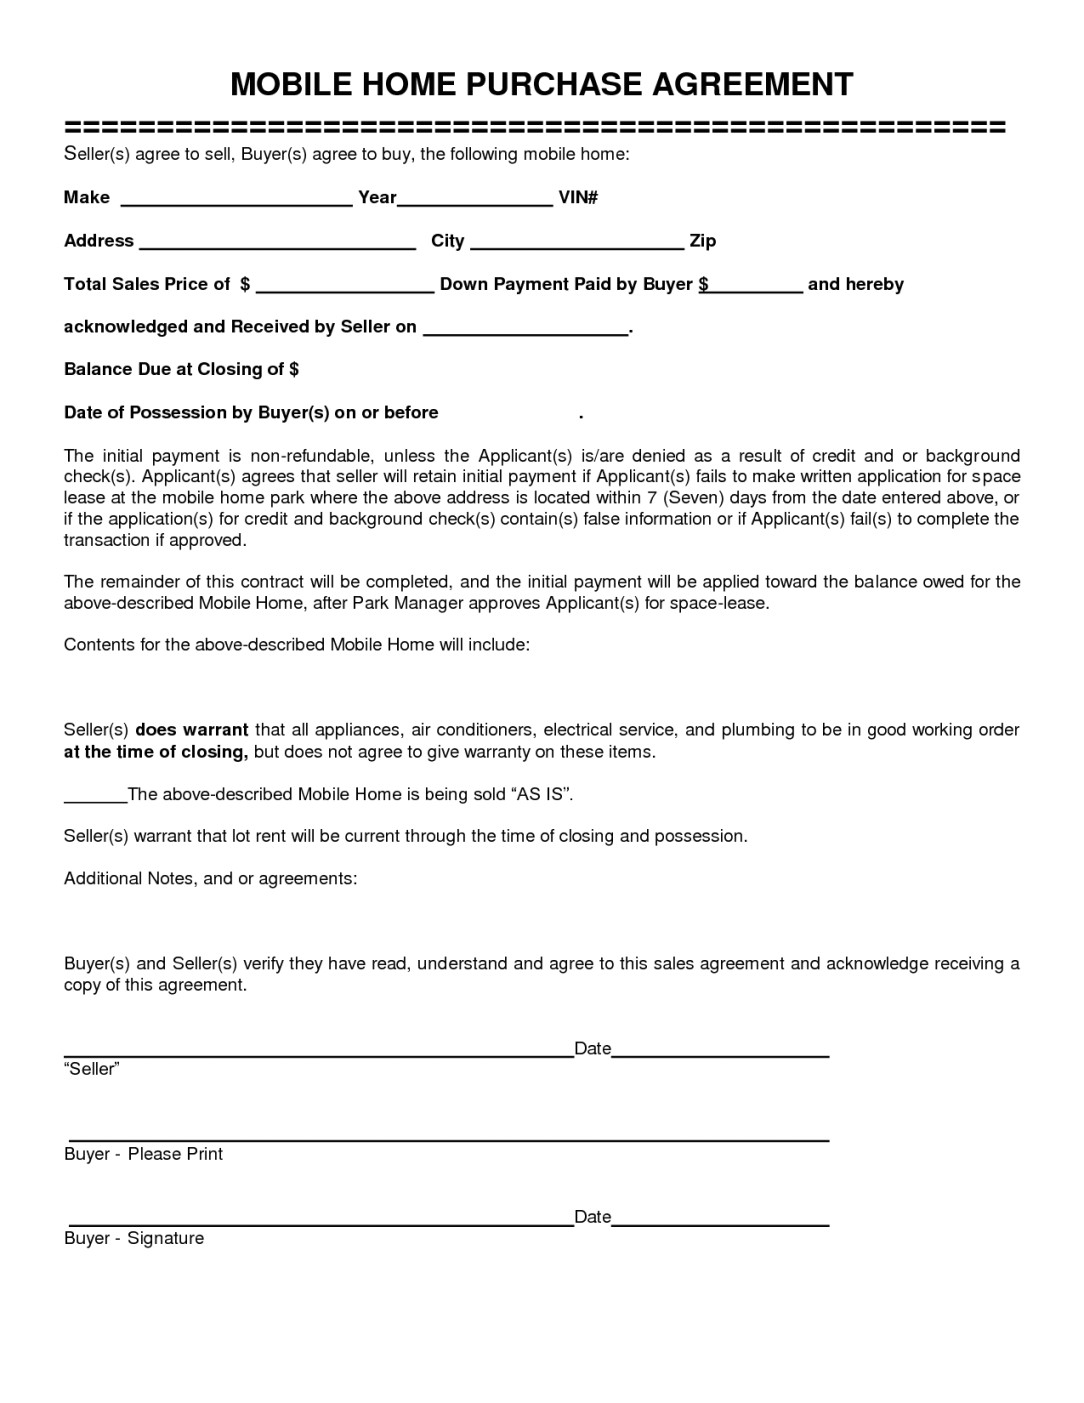 Mobile Home Sales Contract Template Mobile Home Purchase Agreement Gtld World Congress